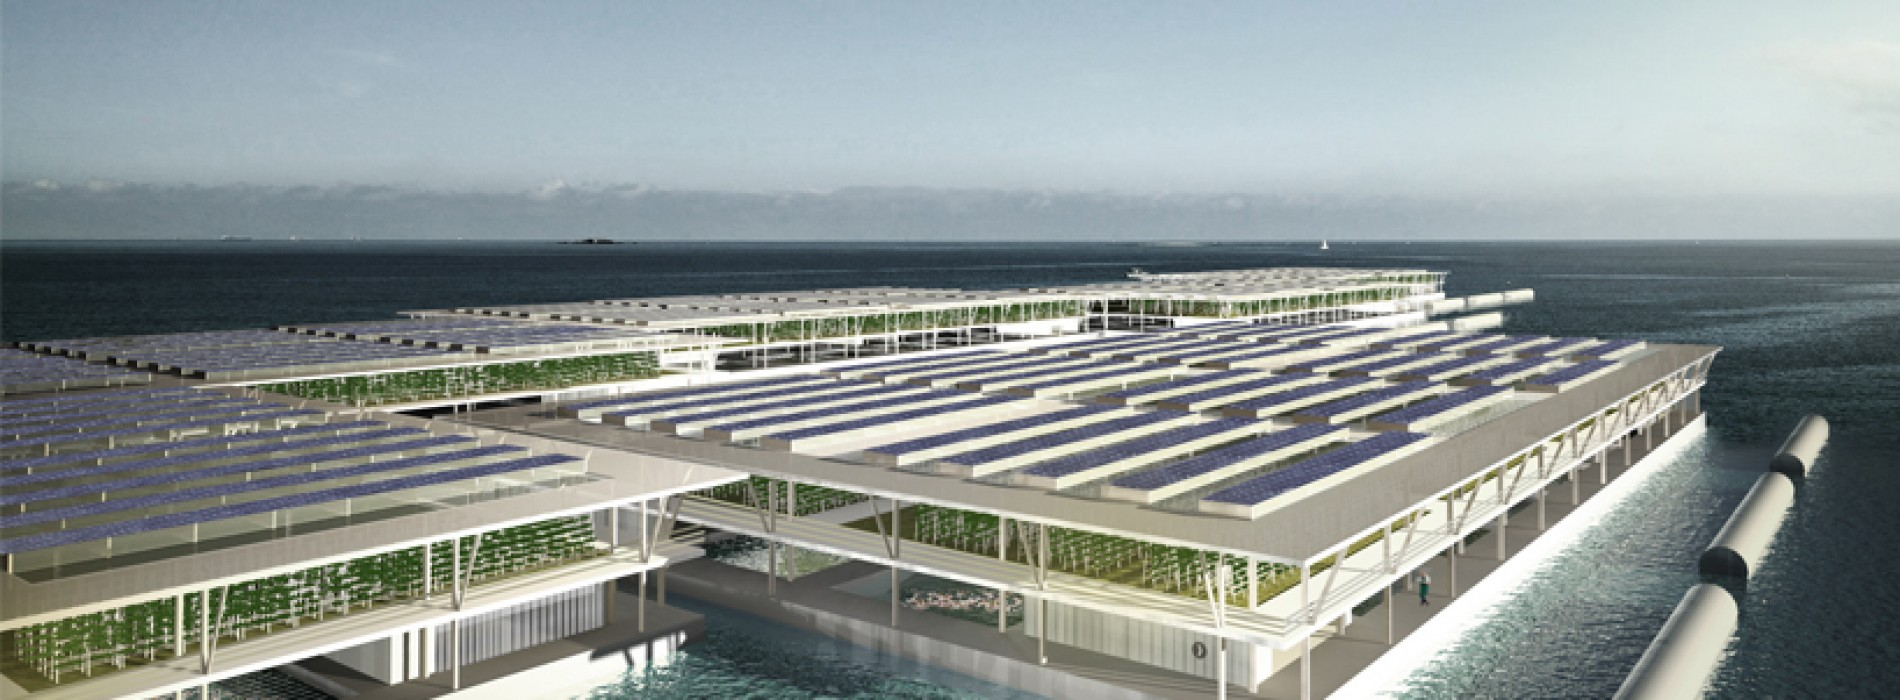 Lack of Farmland? Welcome to the Floating Farm